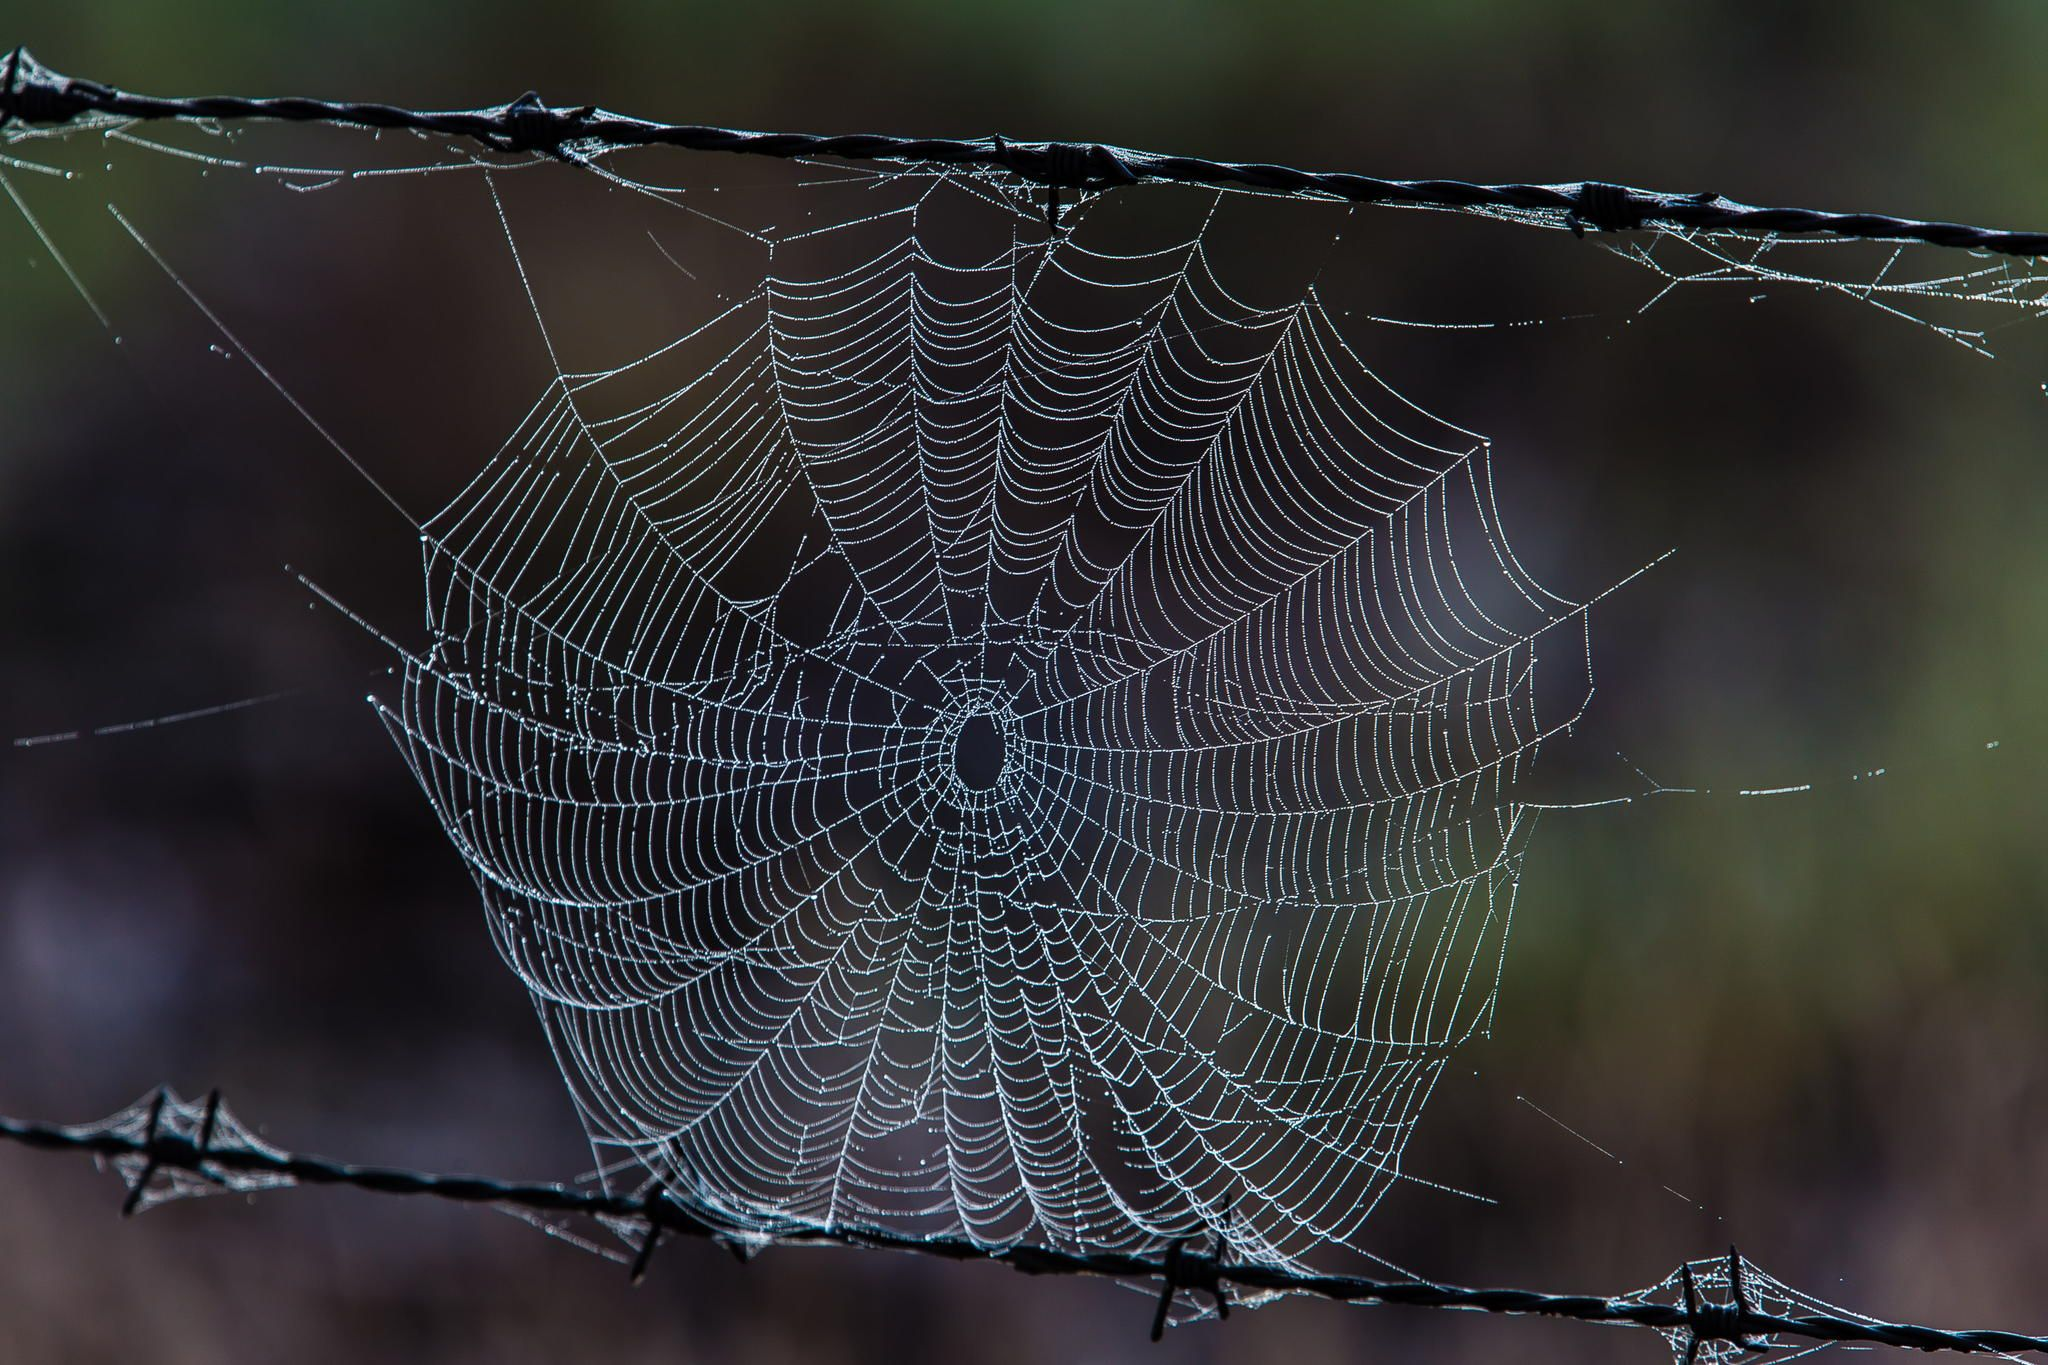 Two traps - Spider web built between two strands of barbed wire ...